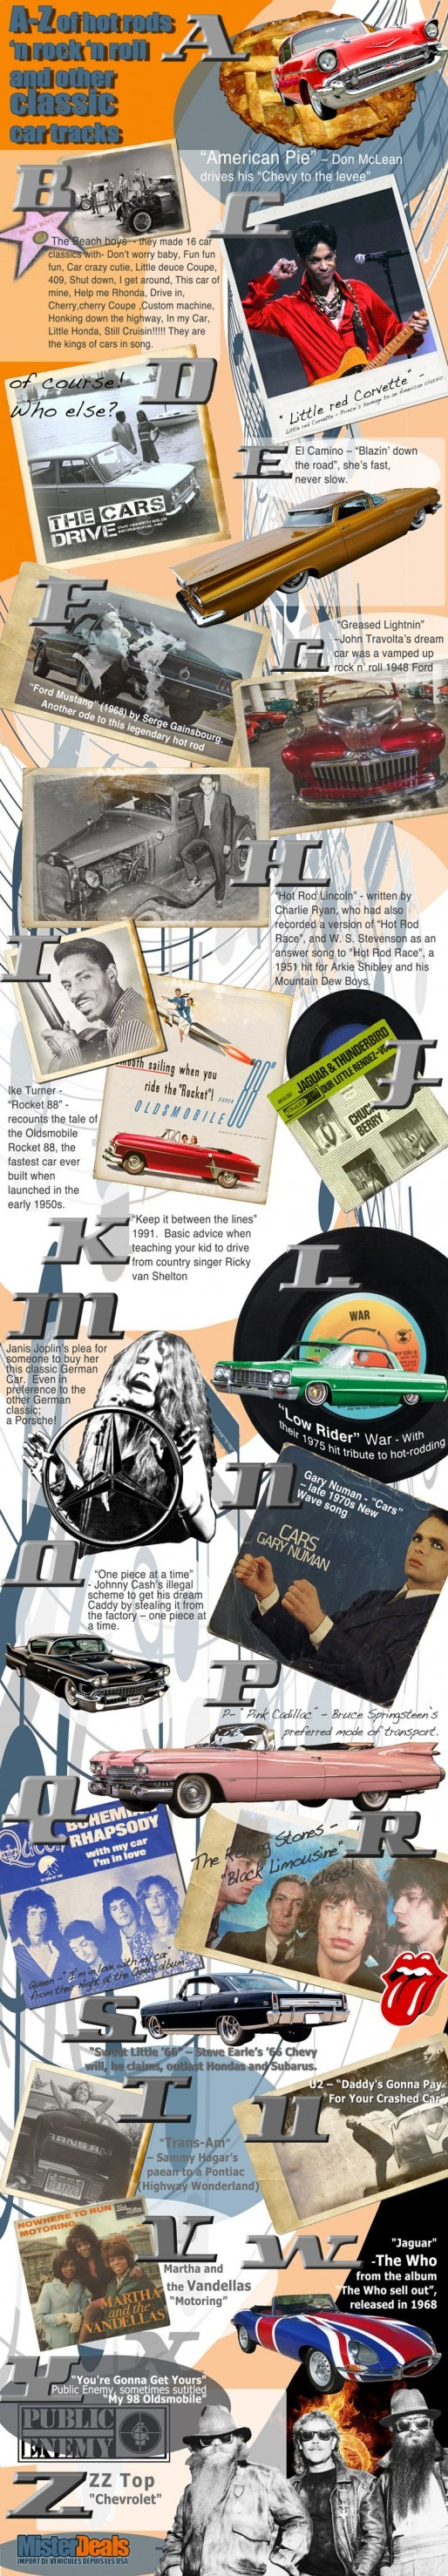 A-Z of Hot Rods and Classic car albums